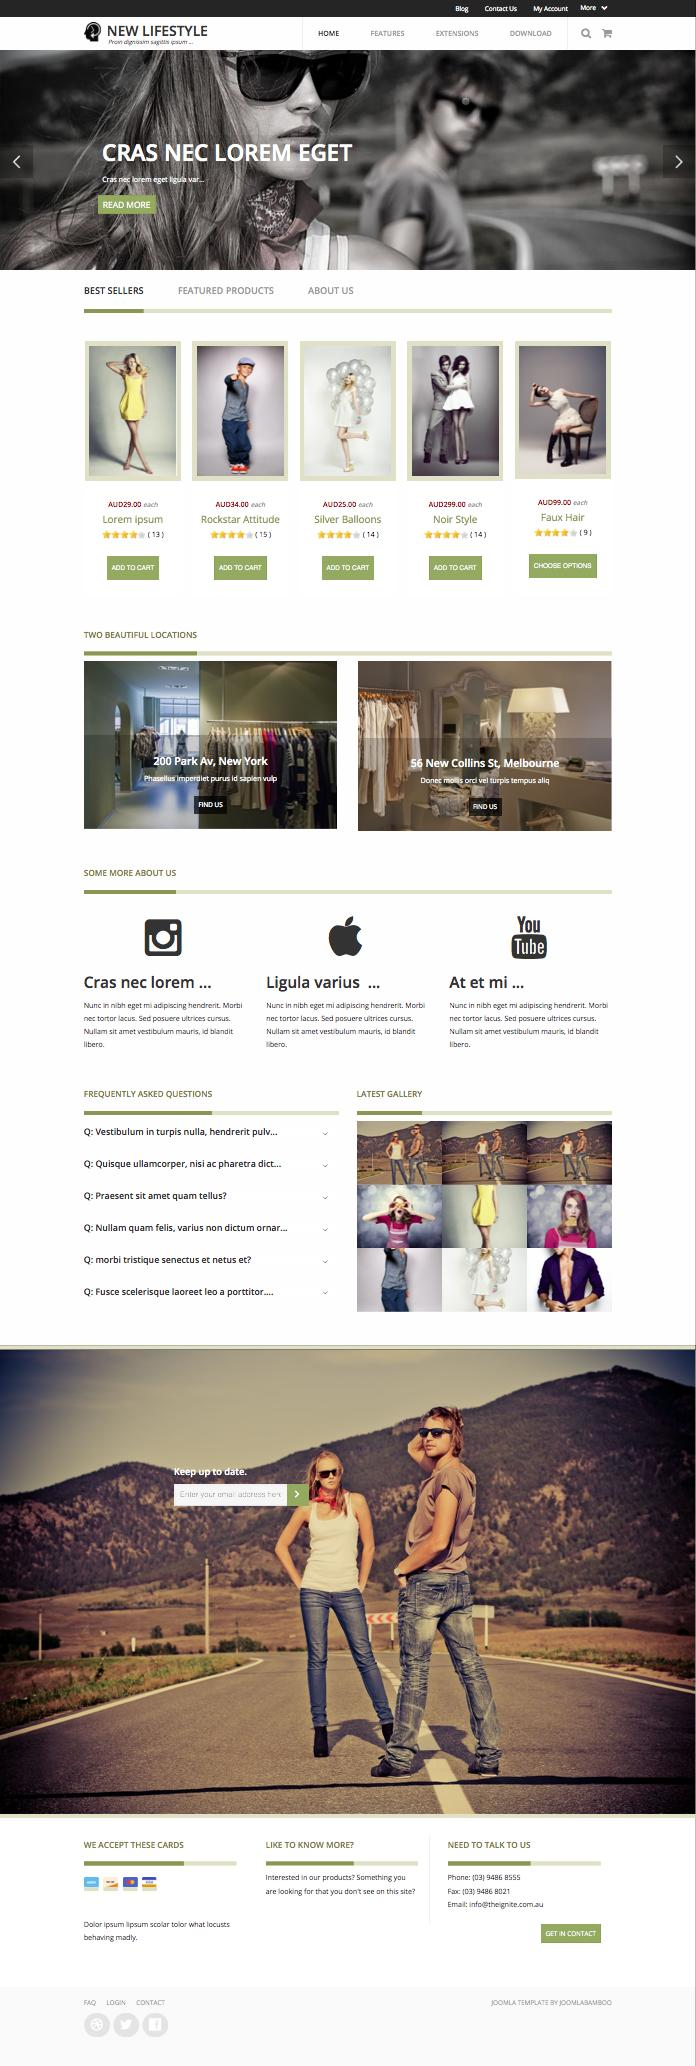 New lifestyle joomla template for magazine ecommerce for Lifestyle e commerce